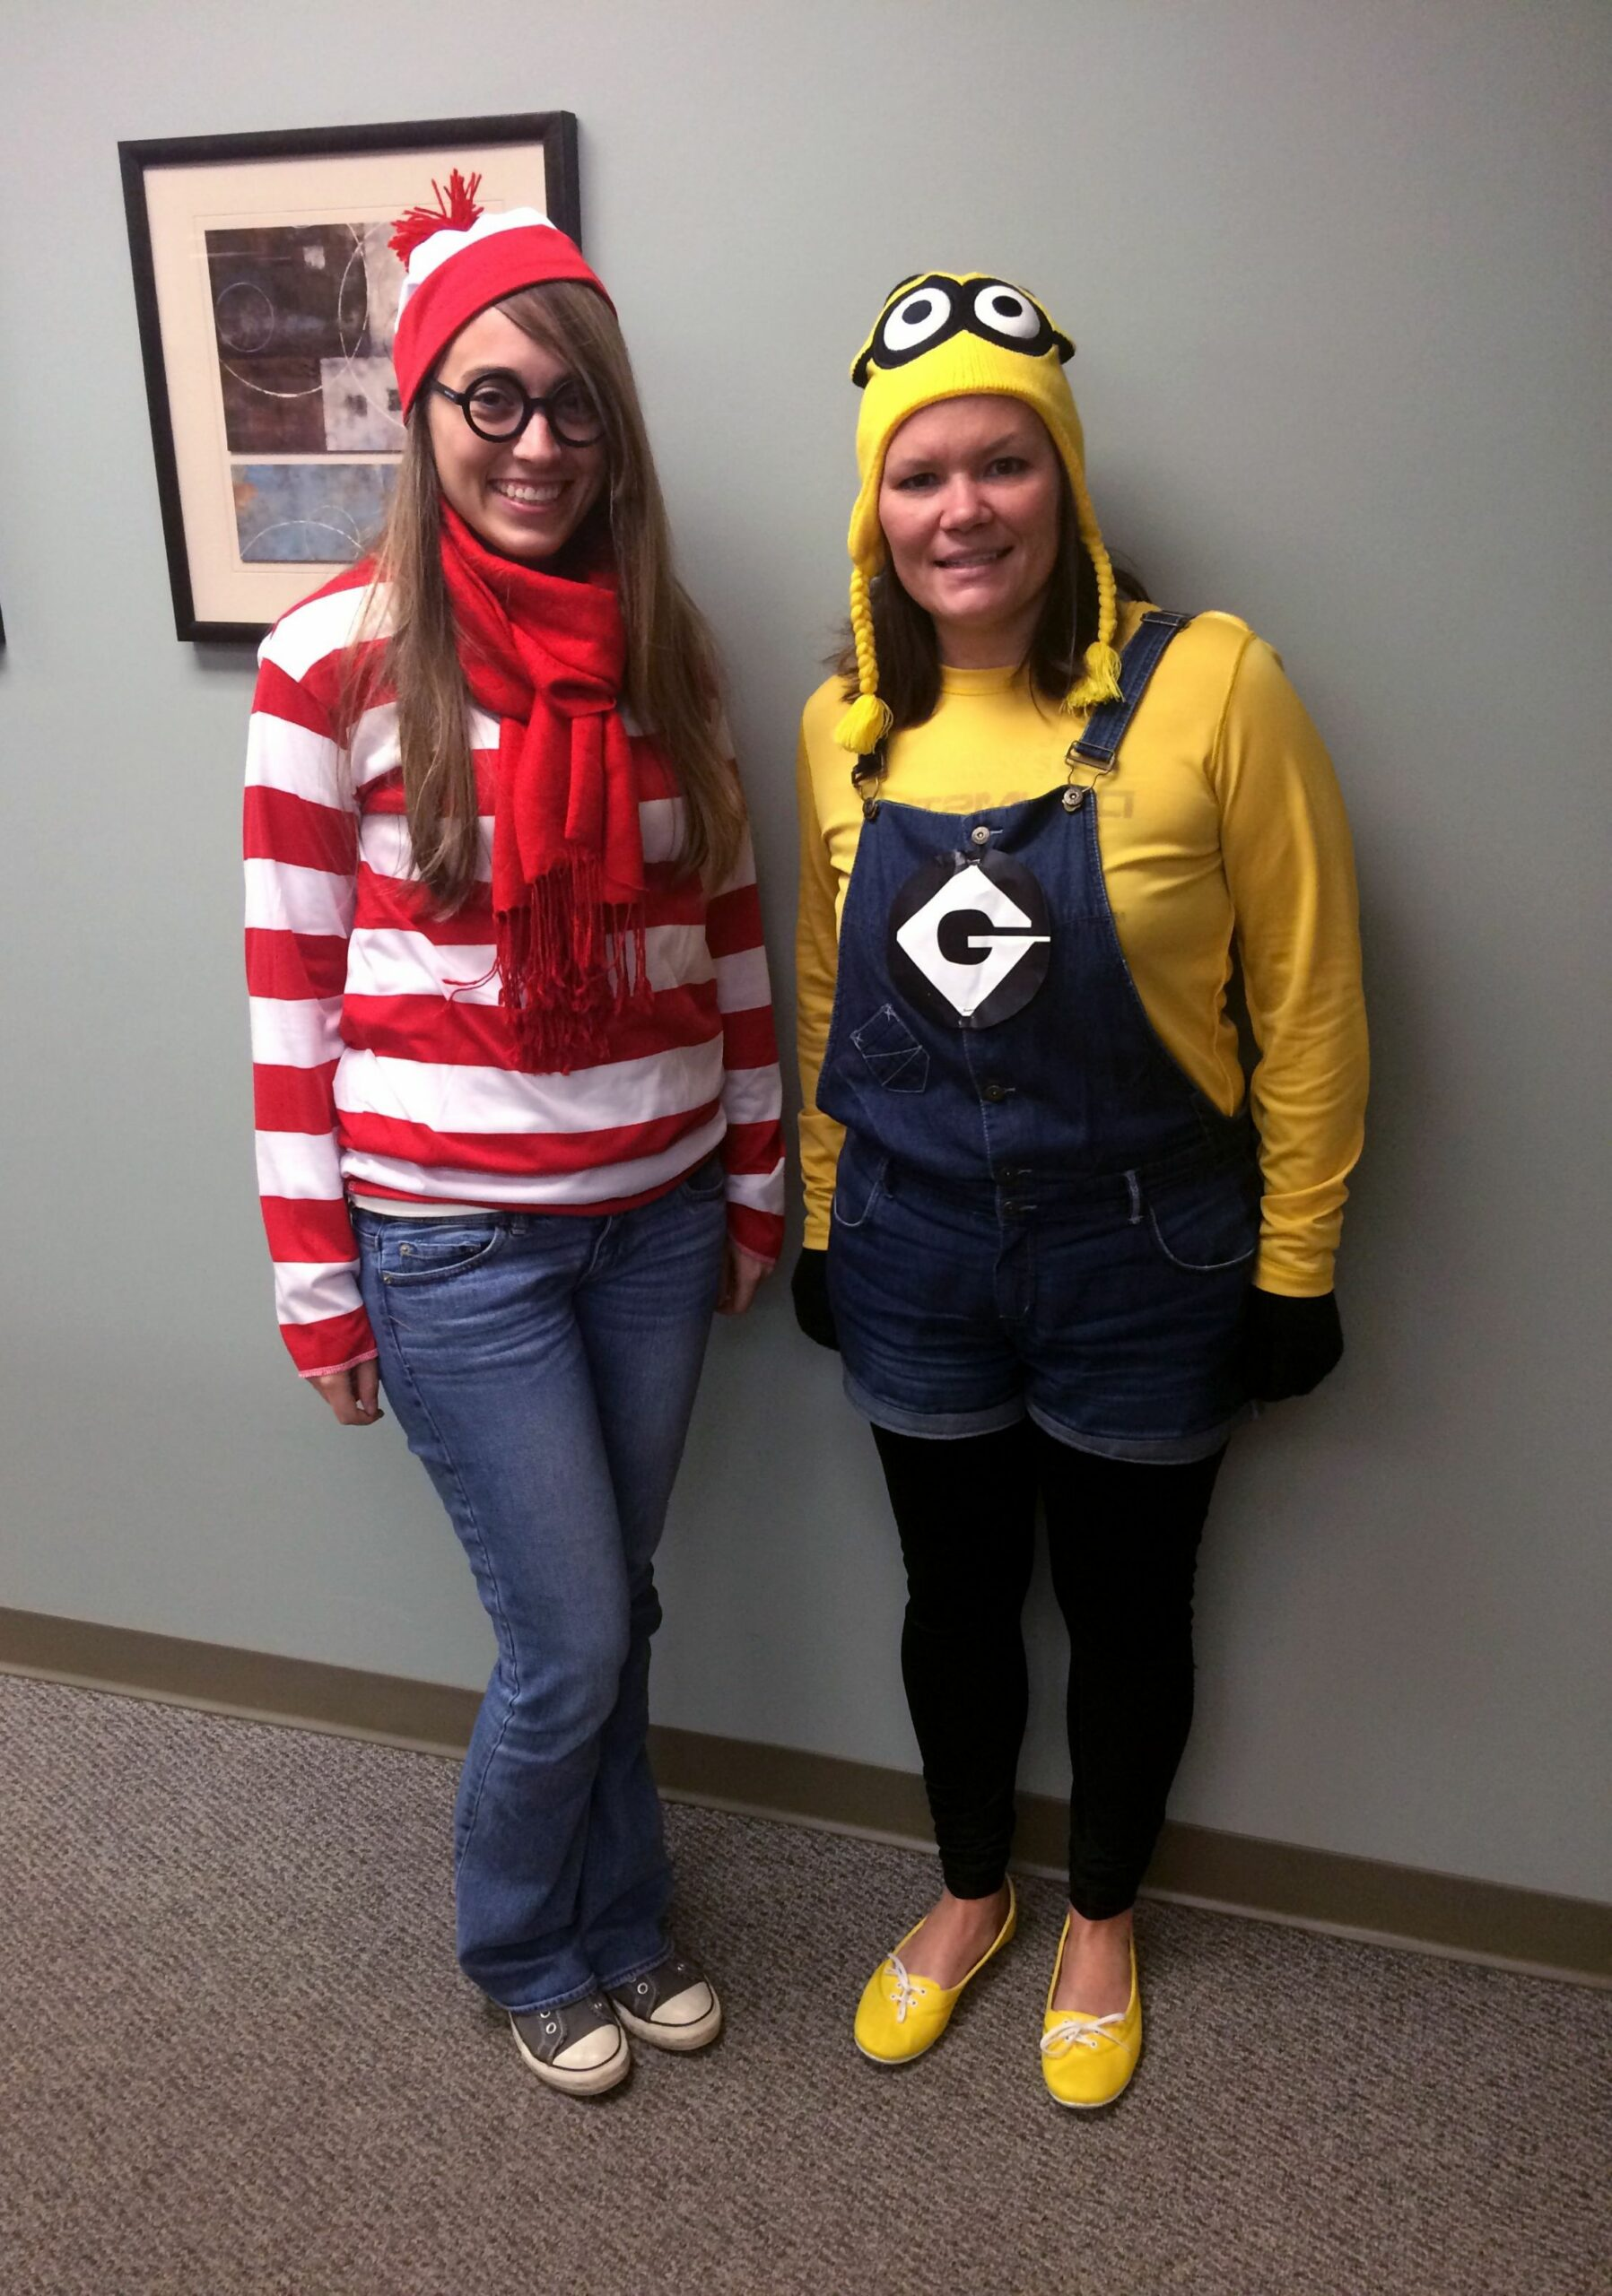 Creative Halloween costume for the office | Where's Waldo and ...